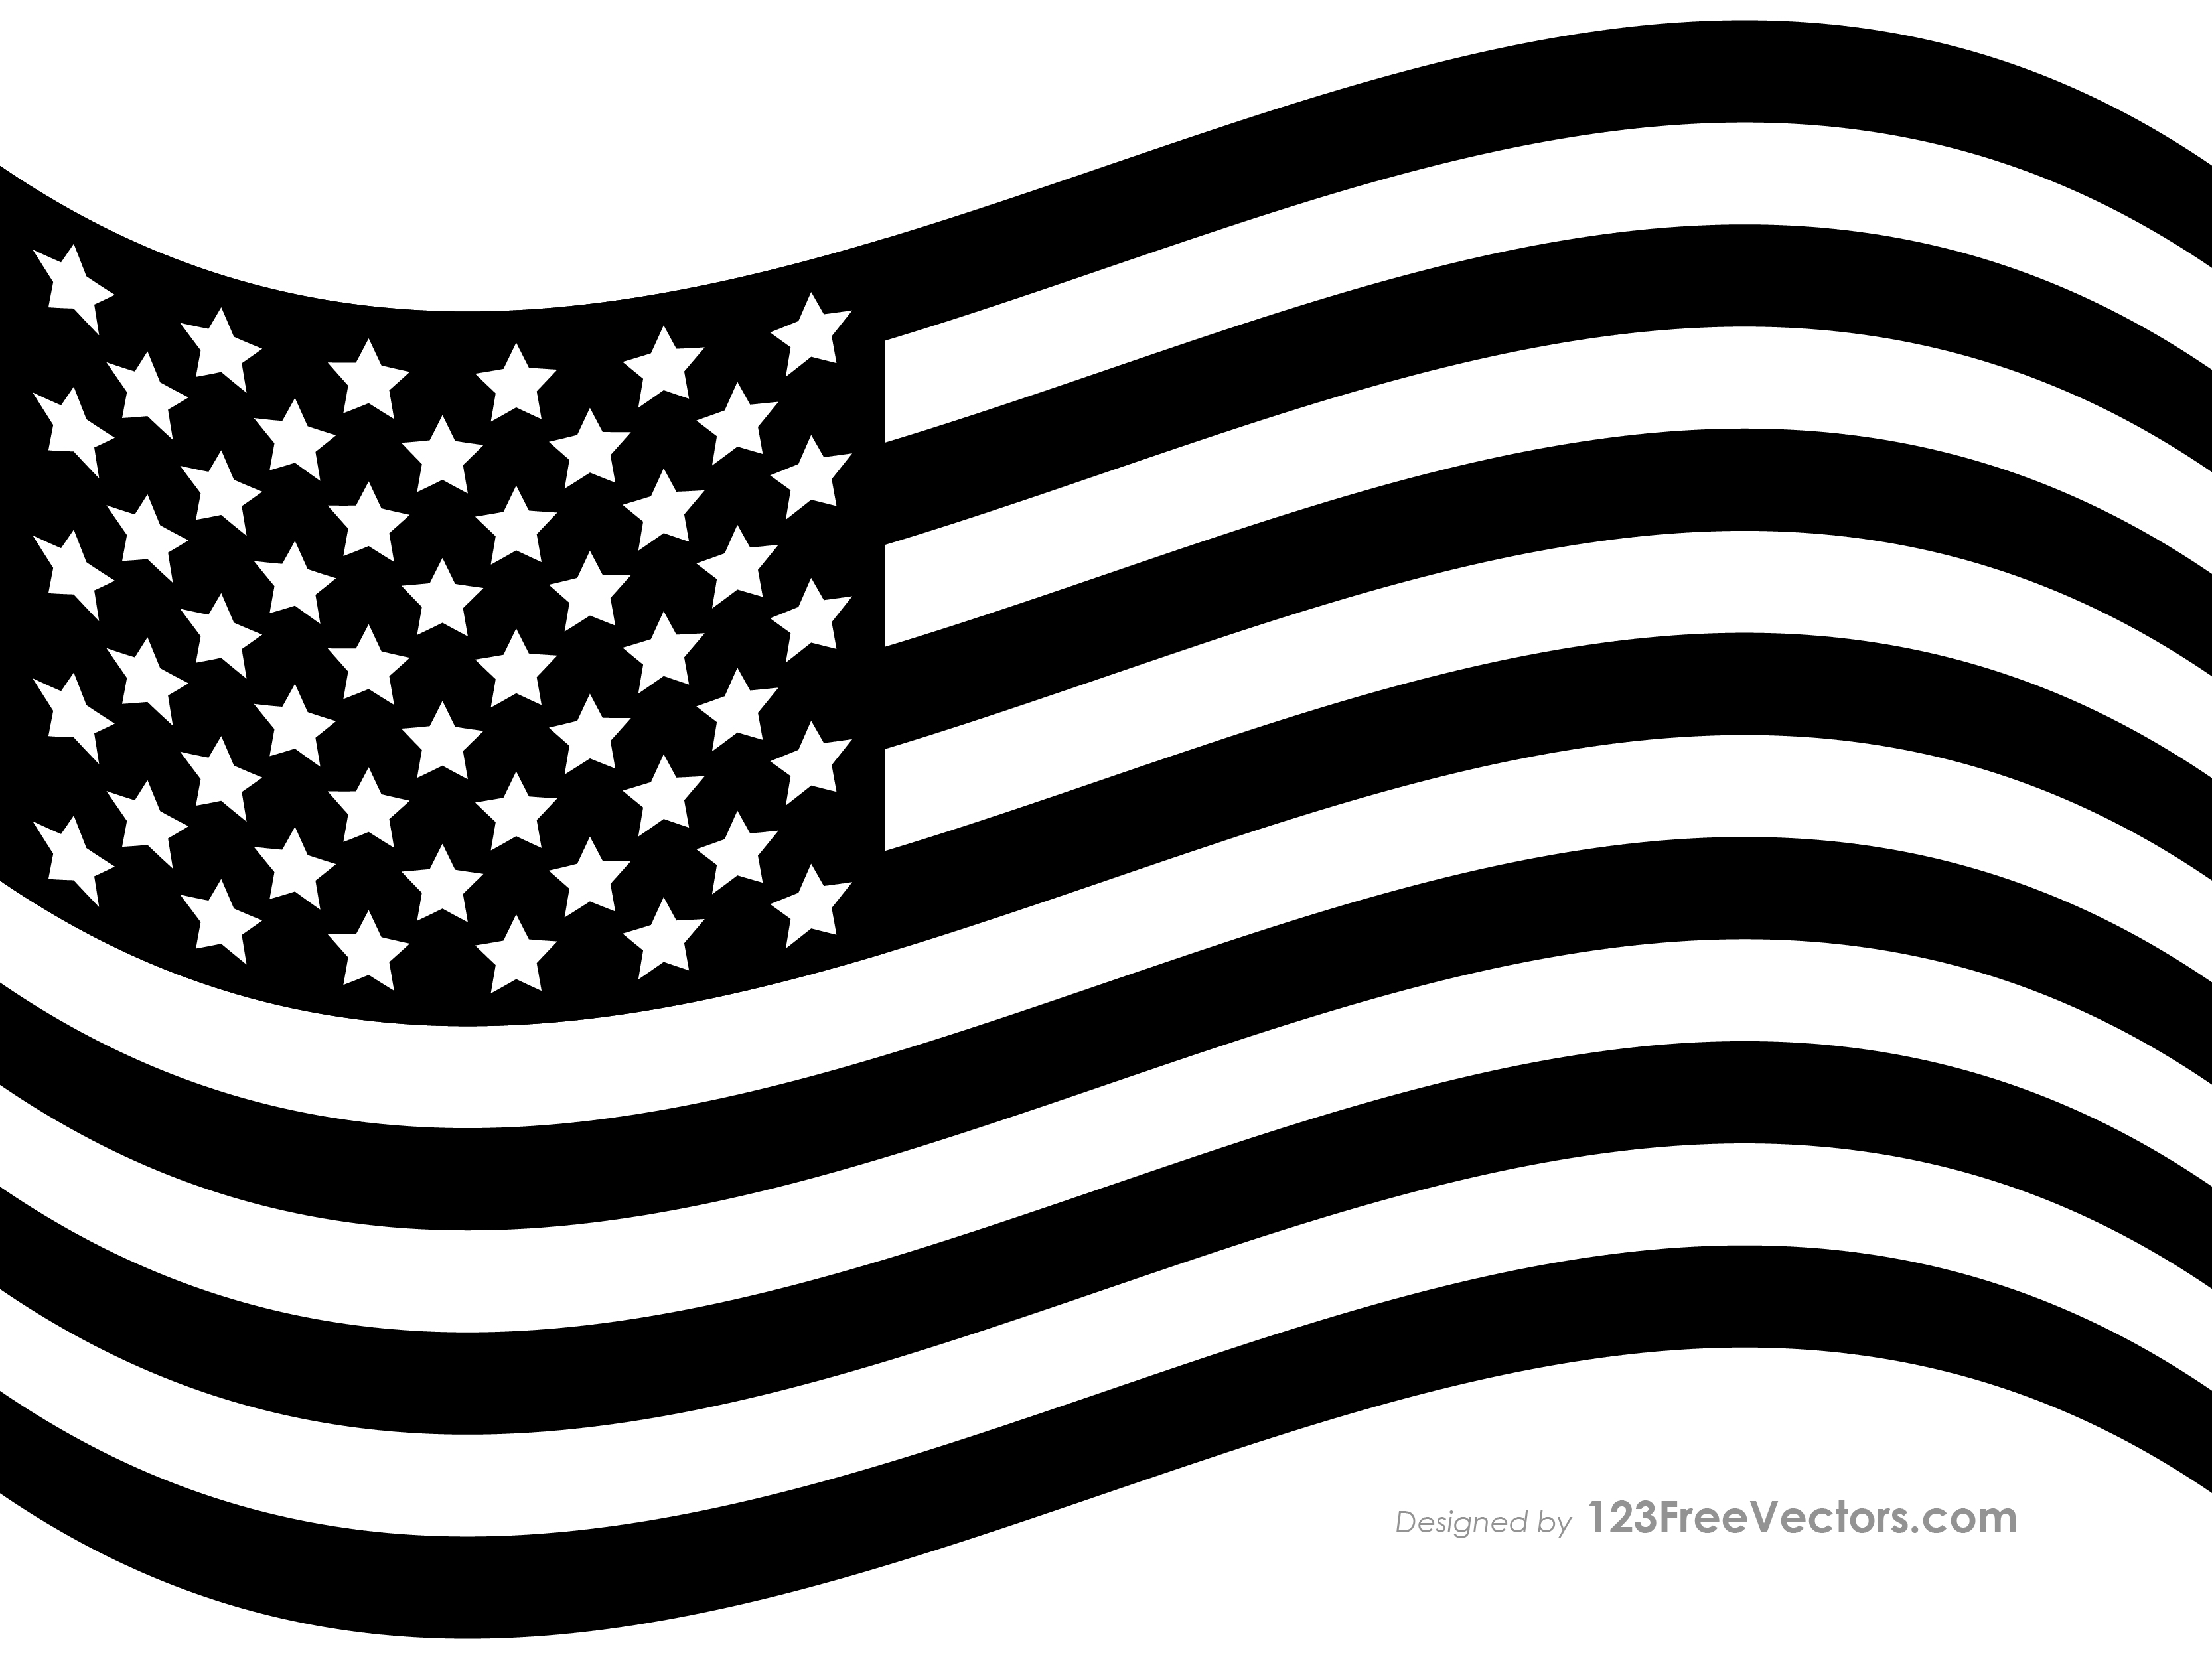 images?q=tbn:ANd9GcQh_l3eQ5xwiPy07kGEXjmjgmBKBRB7H2mRxCGhv1tFWg5c_mWT Awesome Vector American Flag Clipart Black And White @koolgadgetz.com.info